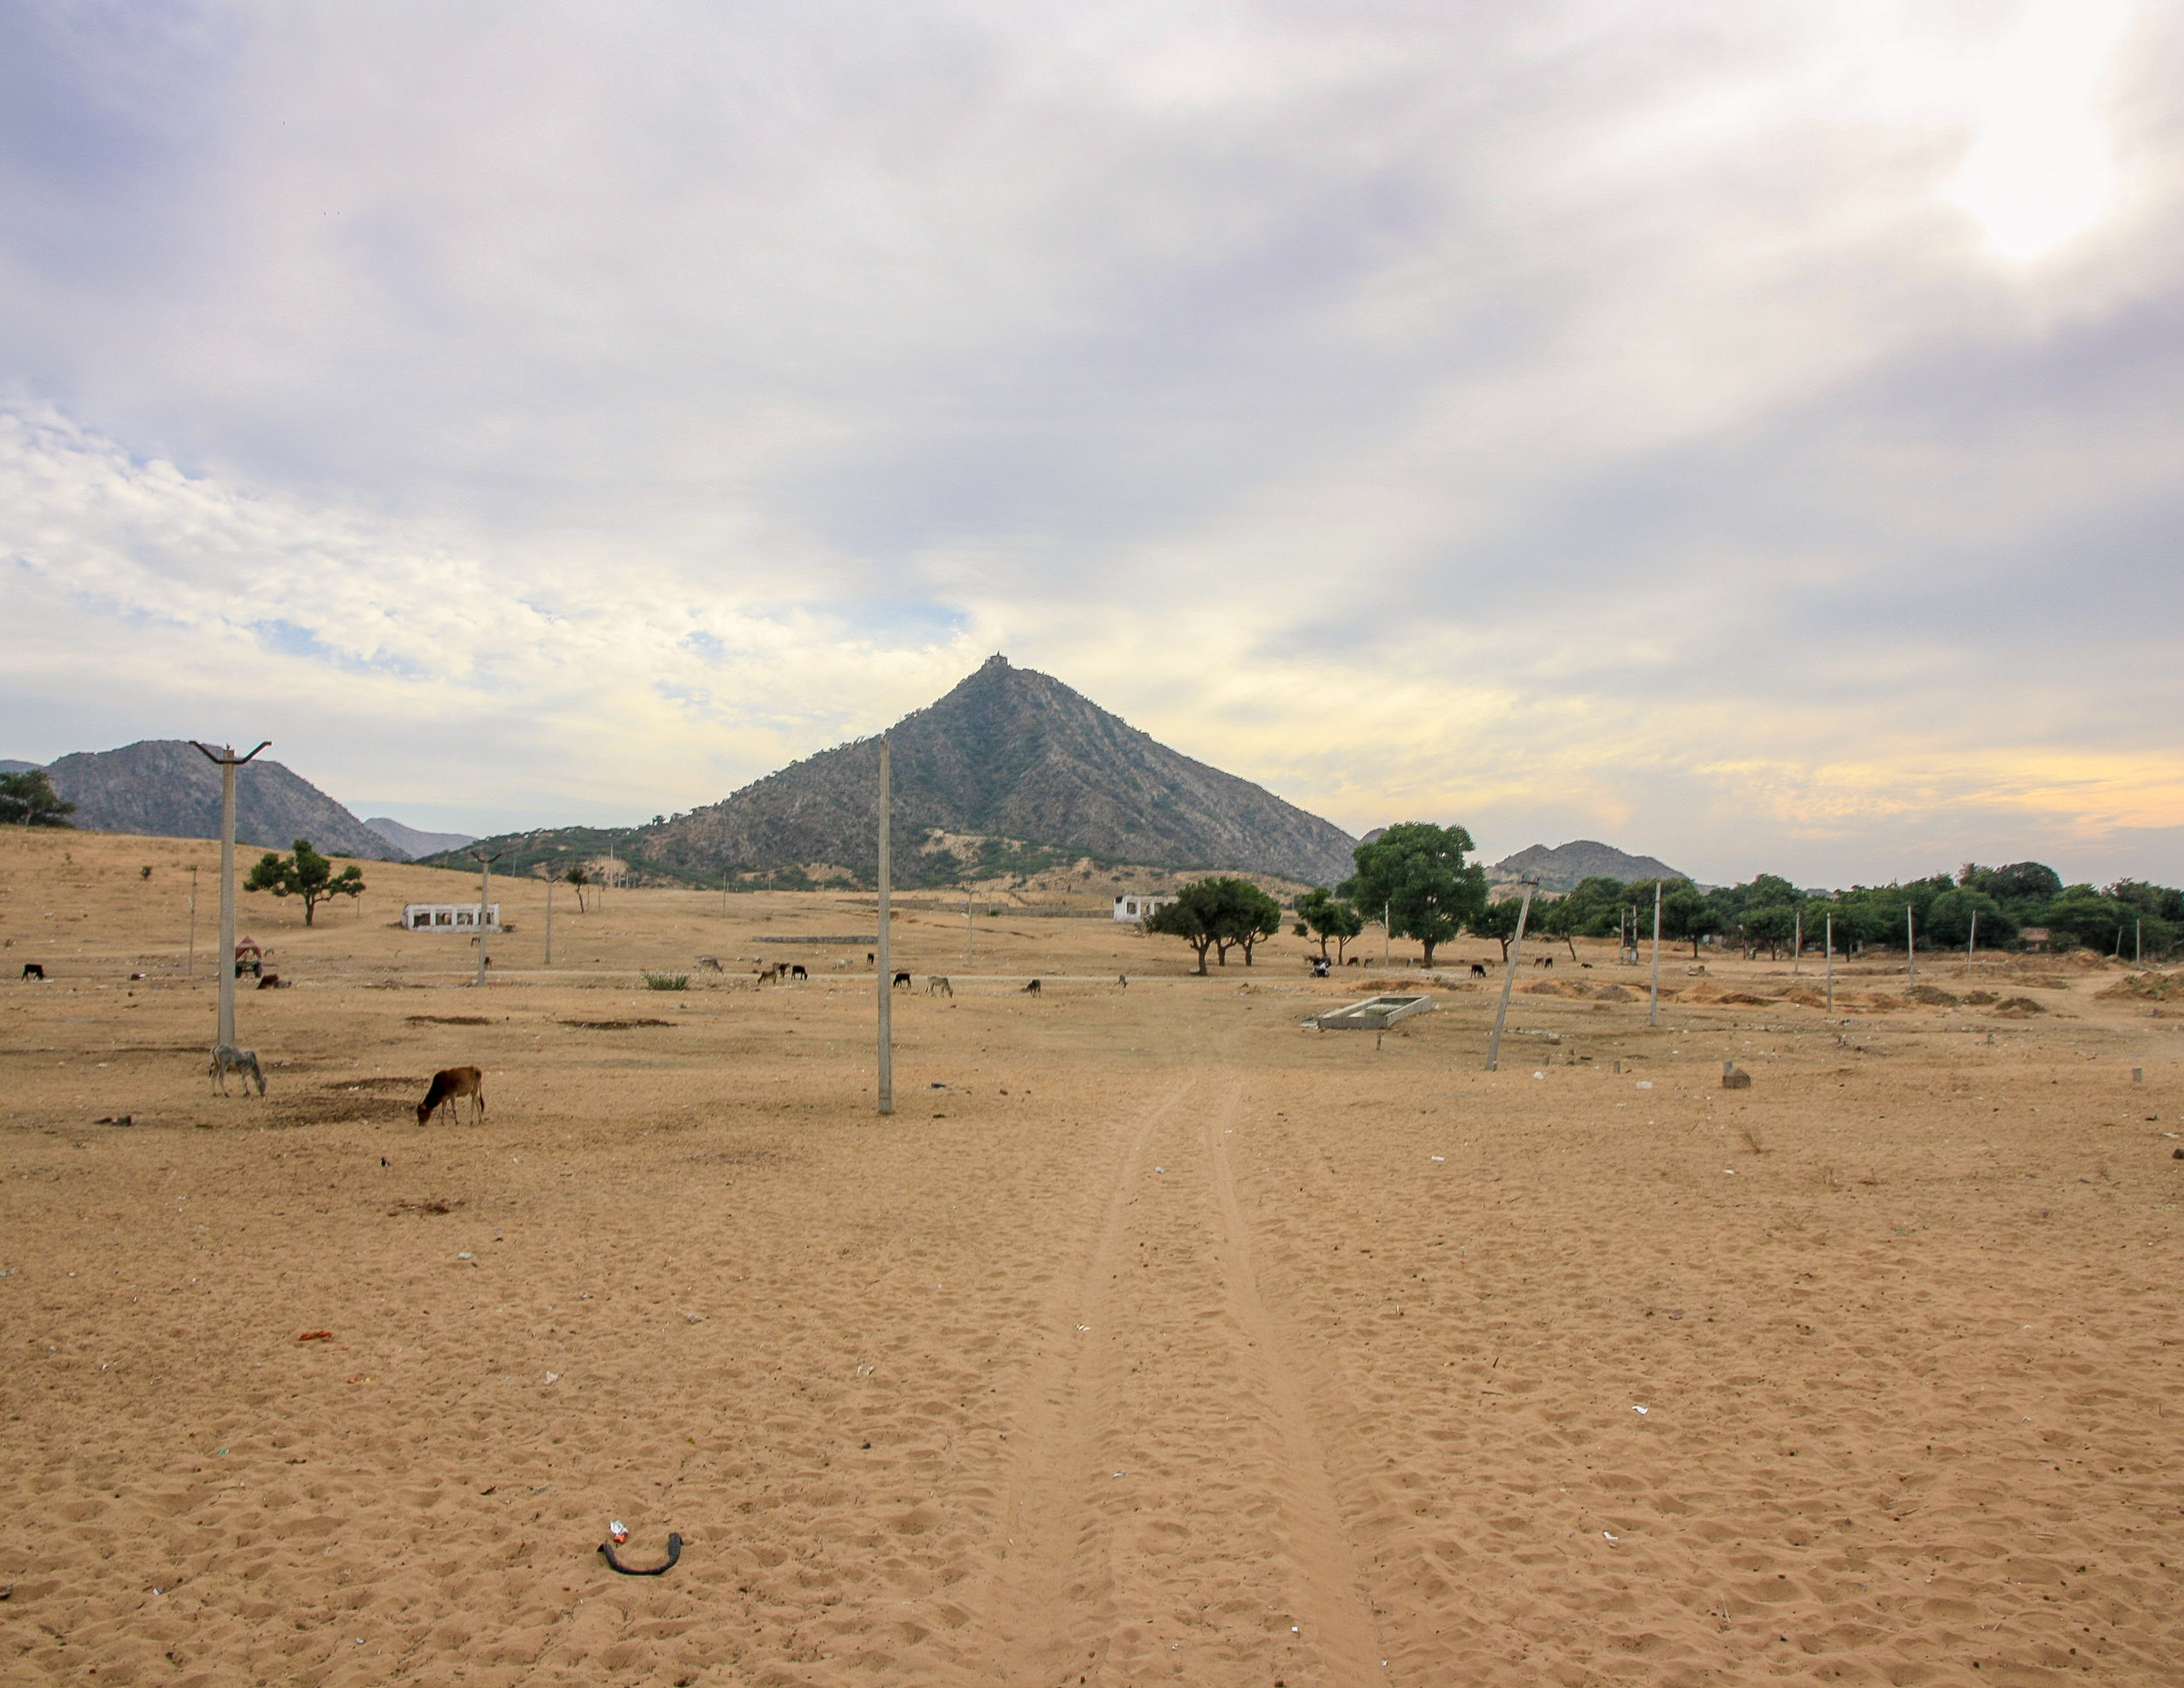 Places to visit in Rajasthan: The desert outside of Pushkar